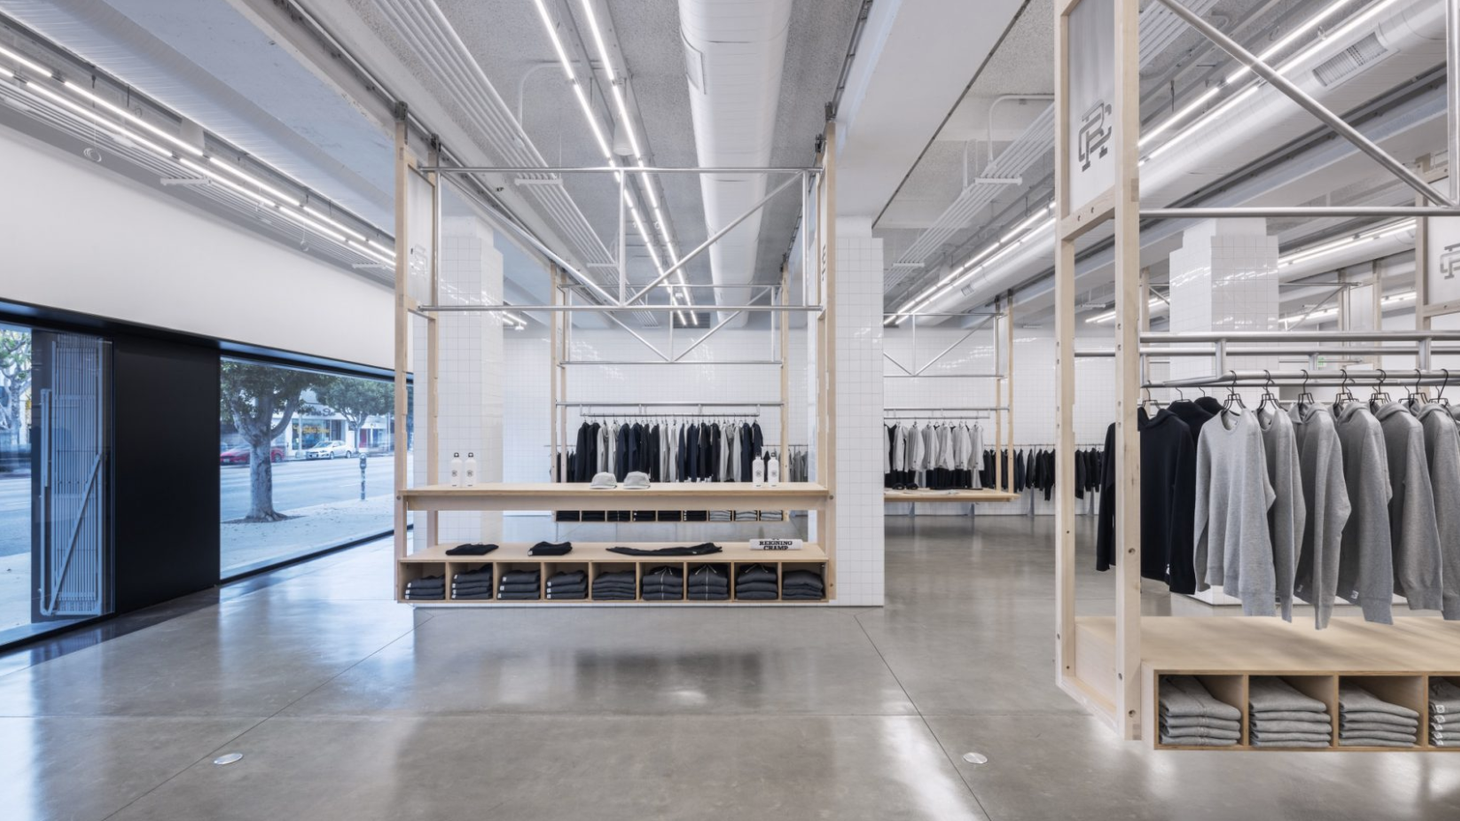 Reigning Champ, 115 South La Brea Ave, Los Angeles, designed by Peter Cardew Architects, shortlisted for Dezeen Awards 2020. Photo: Mike Kelly